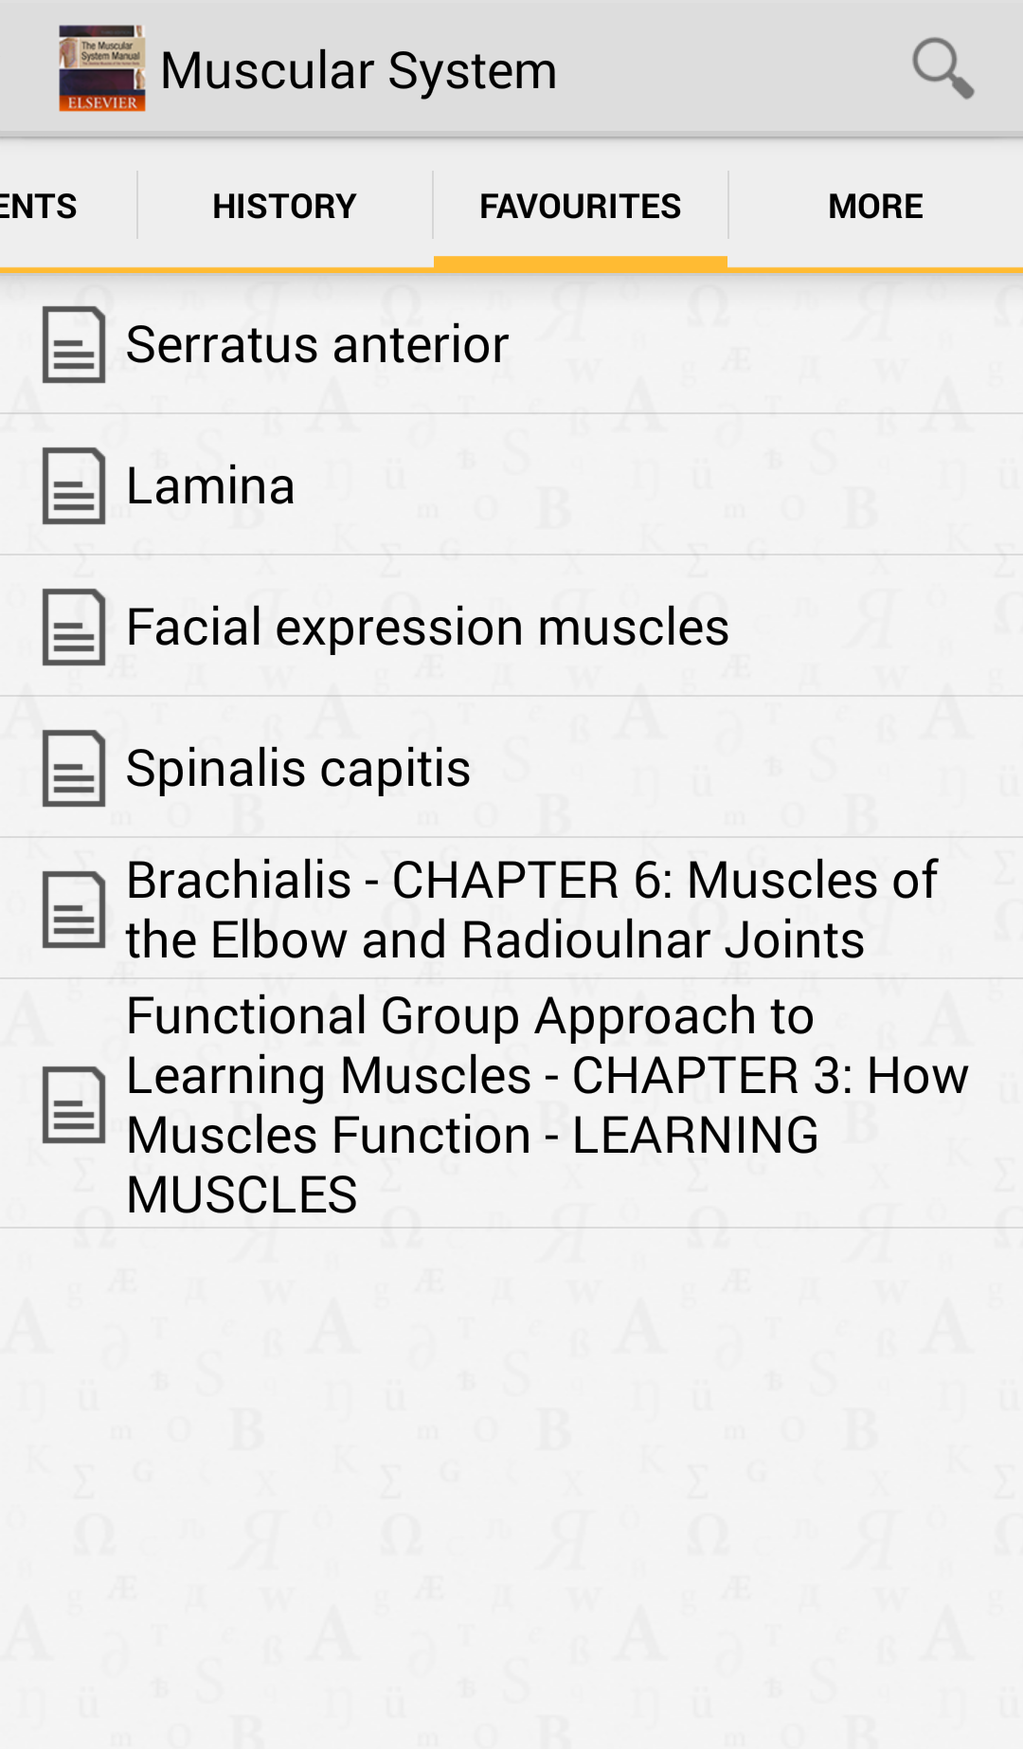 The Muscular System Manual: The Skeletal Muscles of the Human Body Screenshot 5